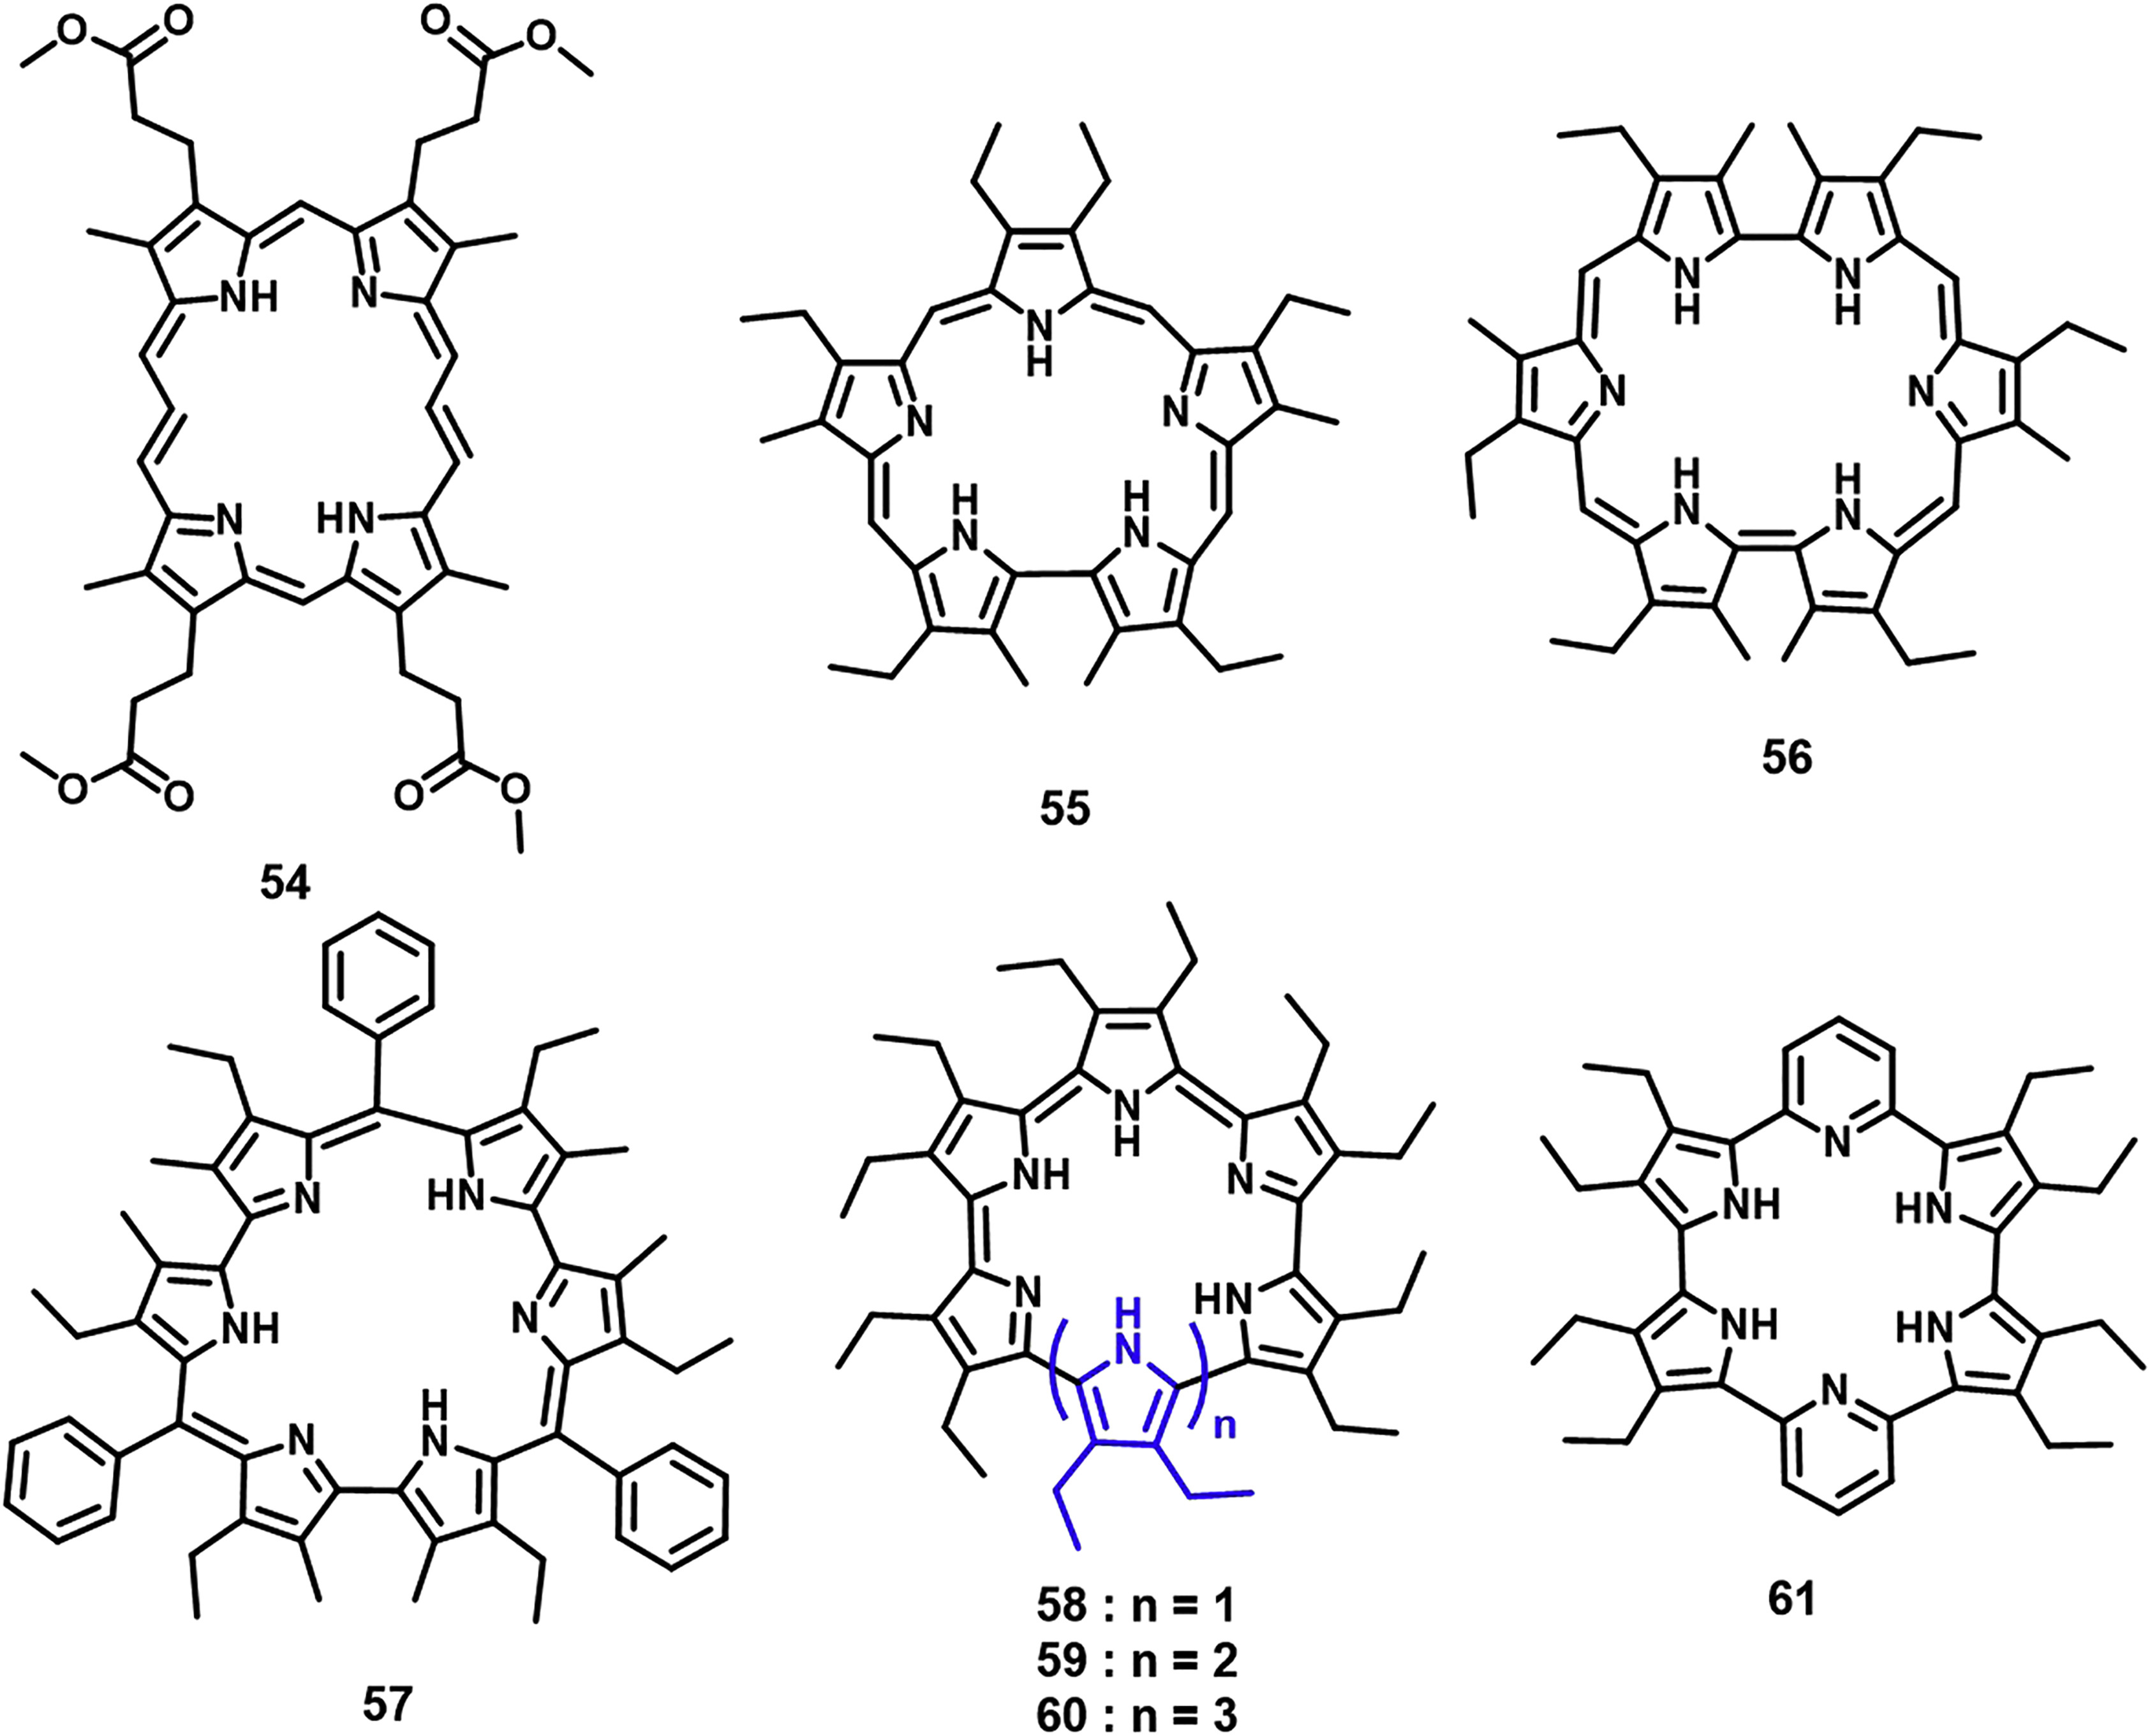 Supramolecular Chemistry Of Anionic Dimers Trimers